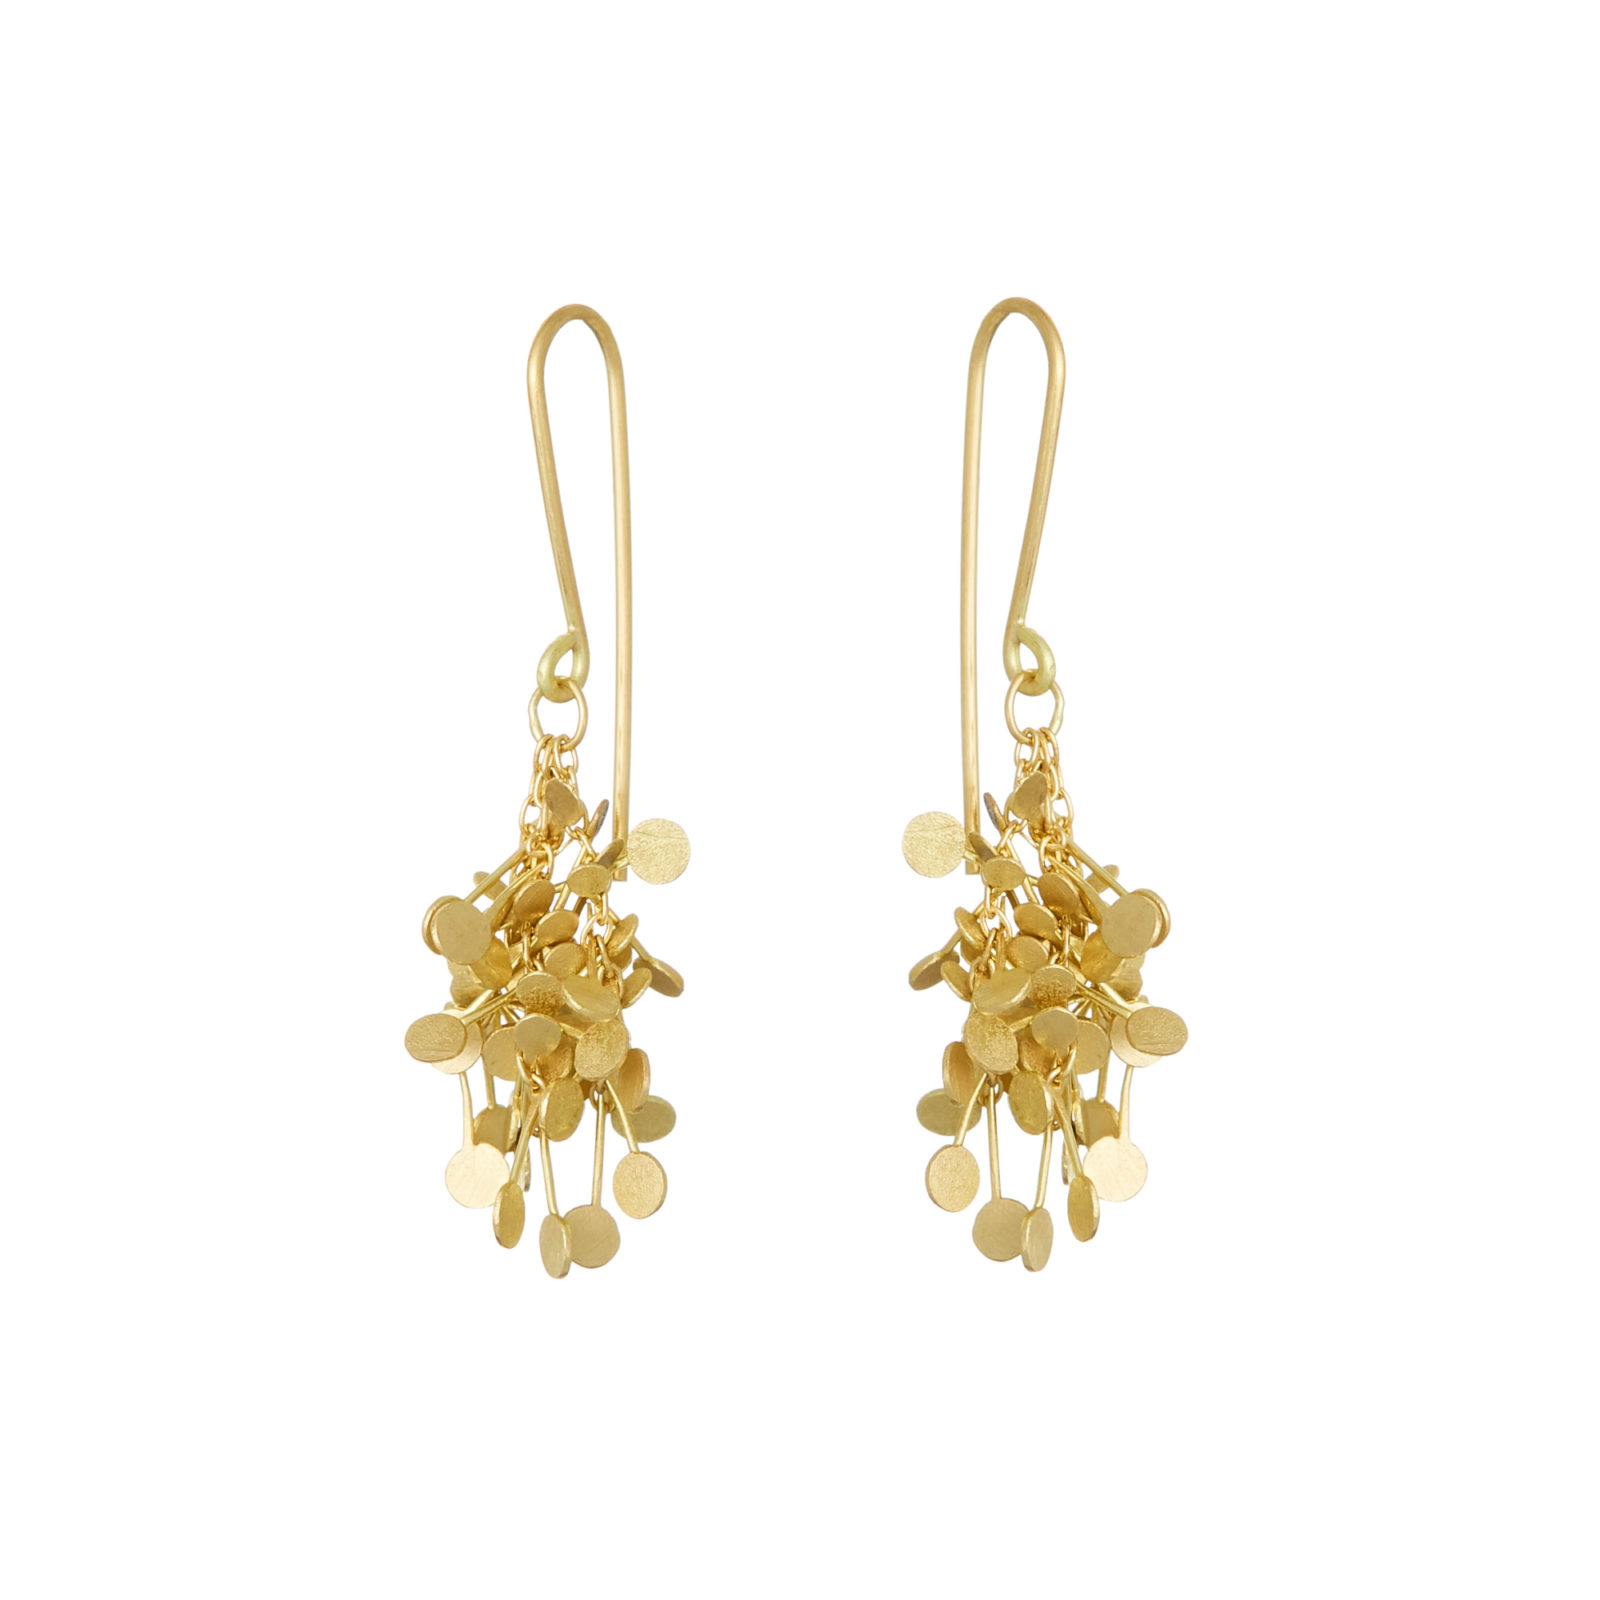 Sia Taylor BE14 Y Yellow Gold Dot Cluster Earrings WB